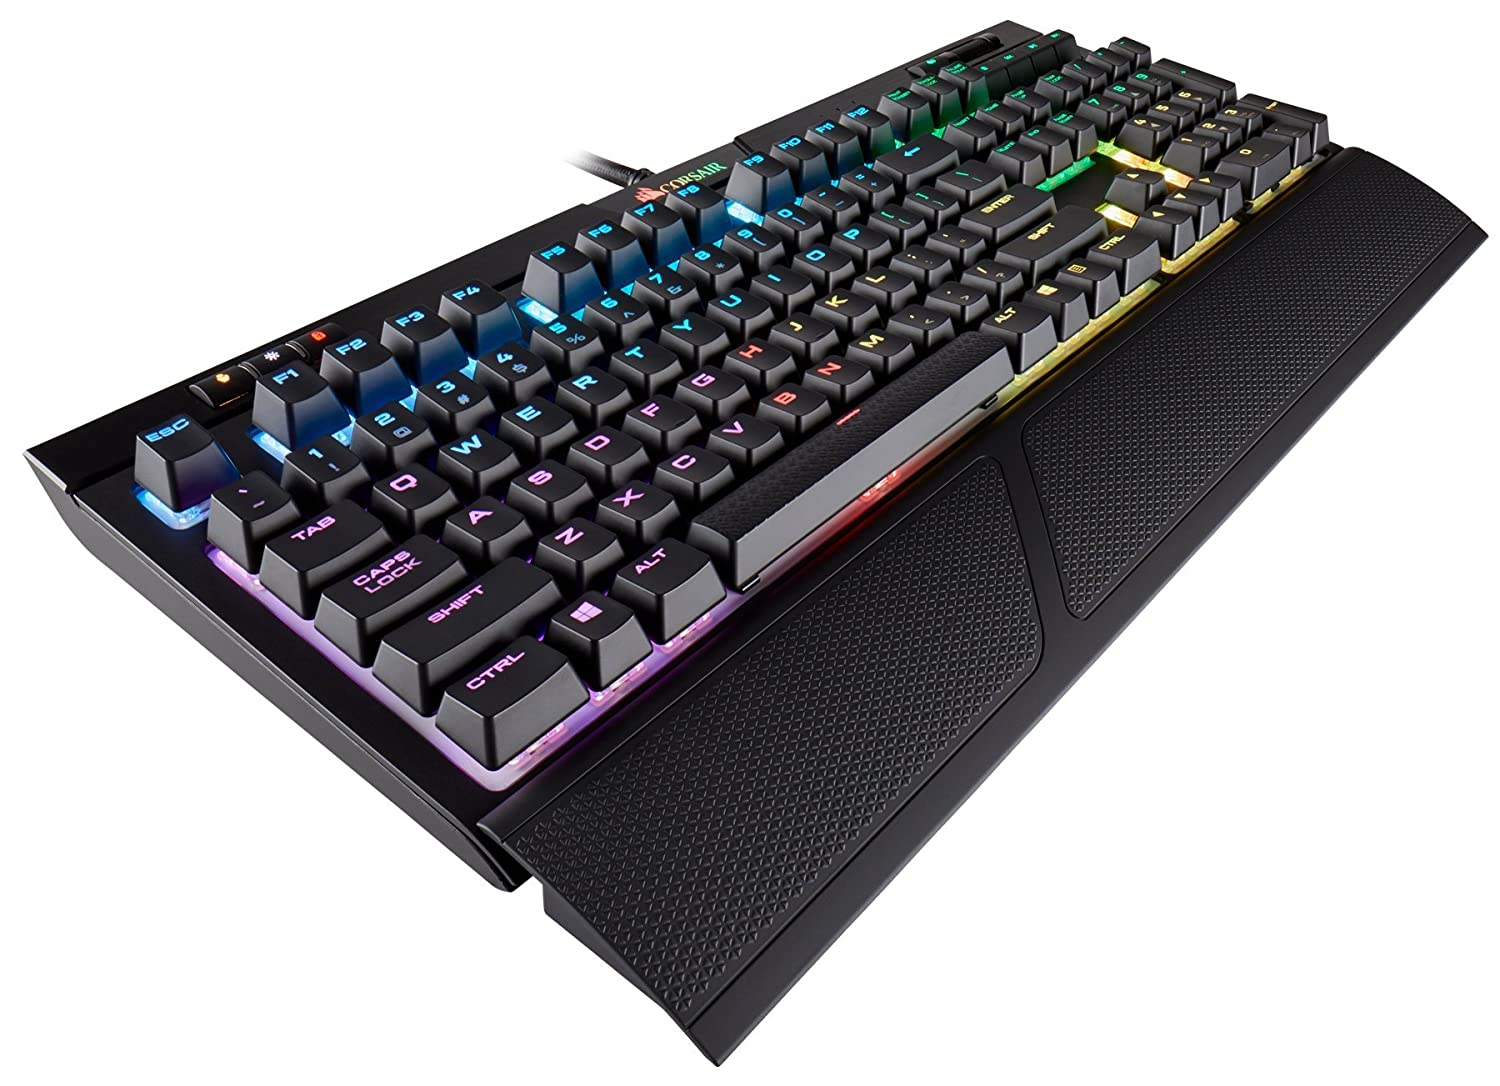 CORSAIR Strafe RGB MK.2 Mechanical Gaming Keyboard – USB Passthrough – Linear and Quiet – Cherry MX Red Switch – RGB LED Backlit